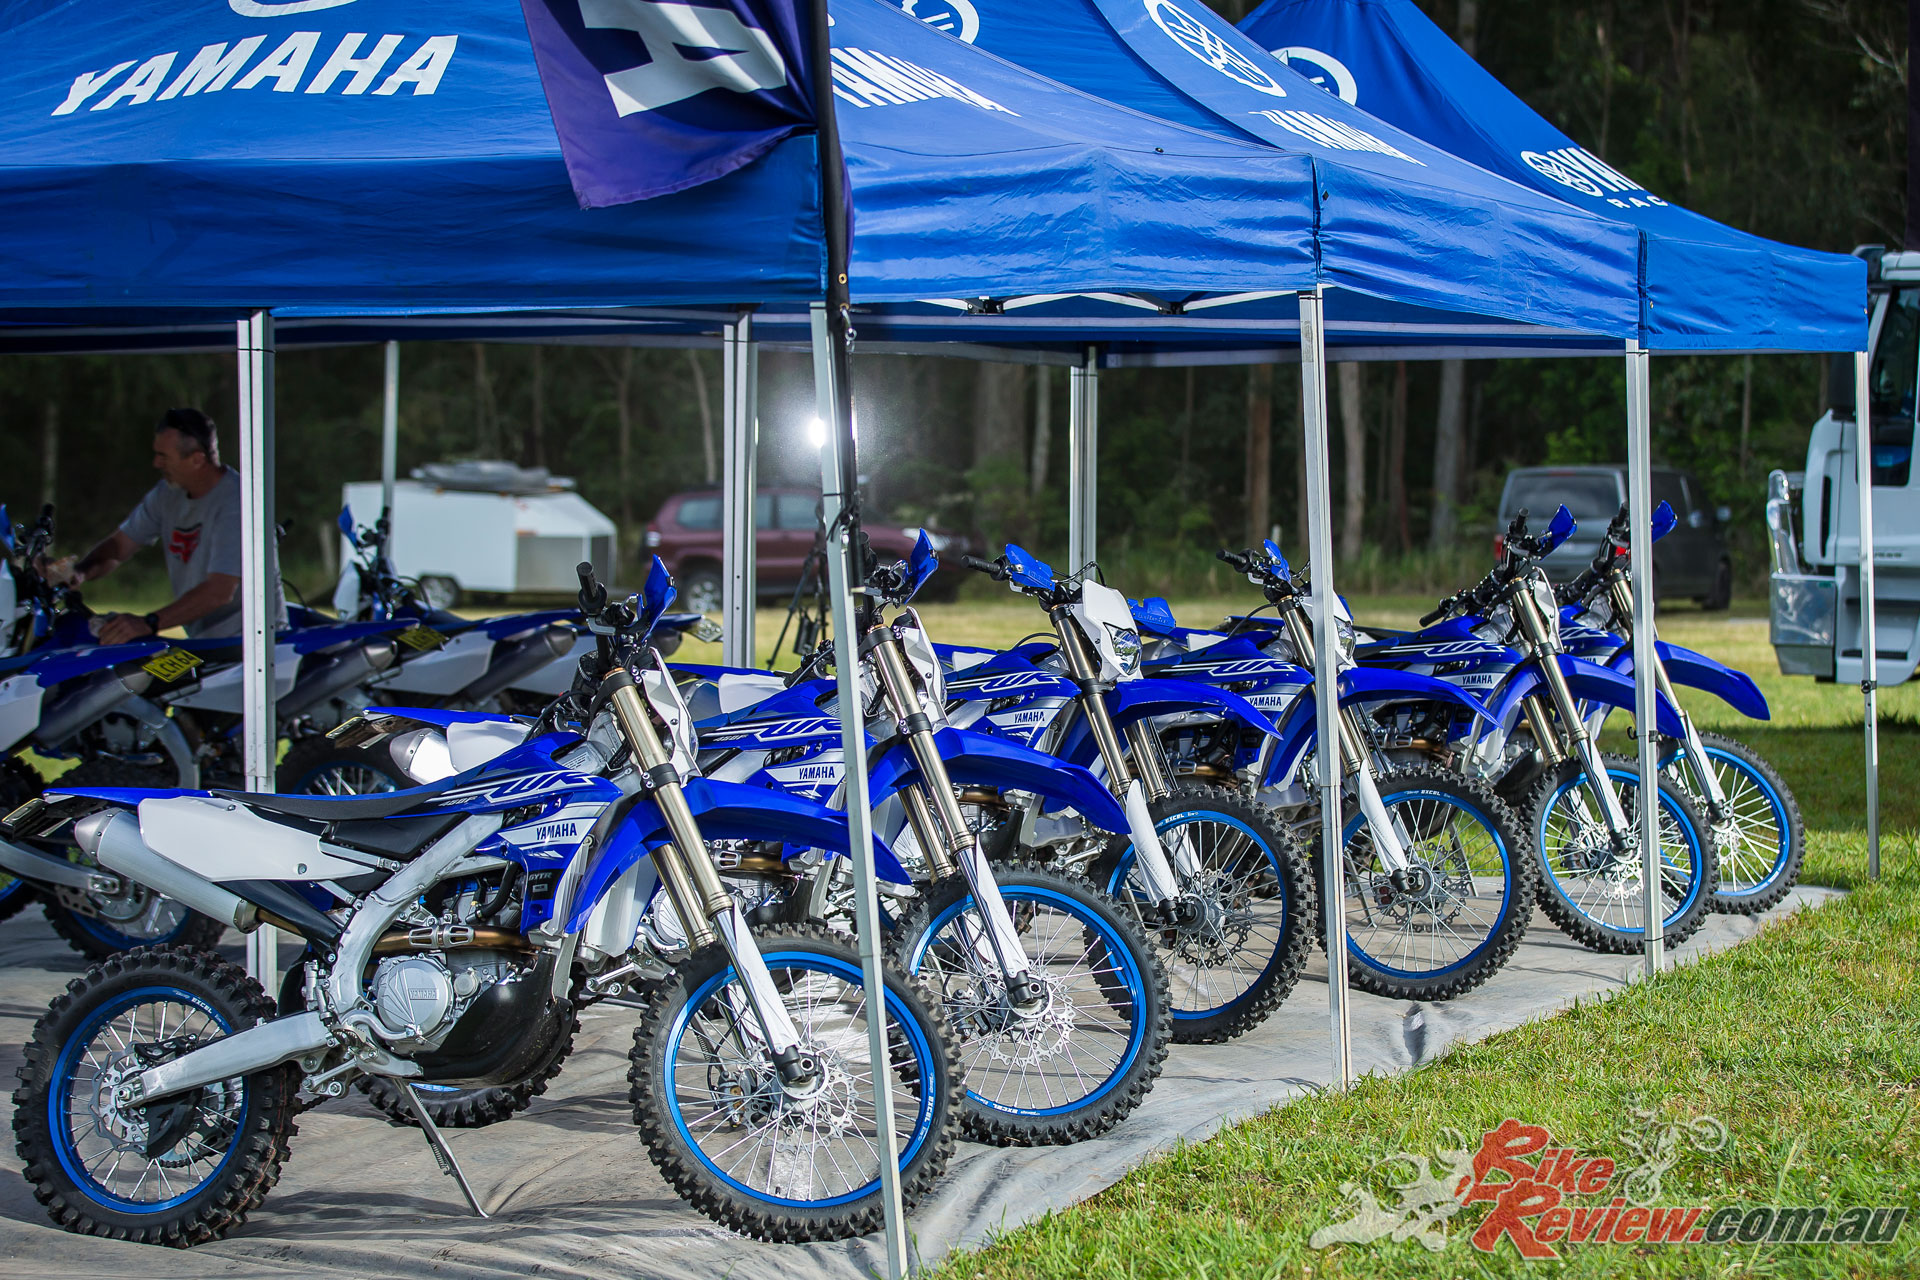 Stroud NSW was the perfect location for the two-day launch 2019 Yamaha WR450F World Launch